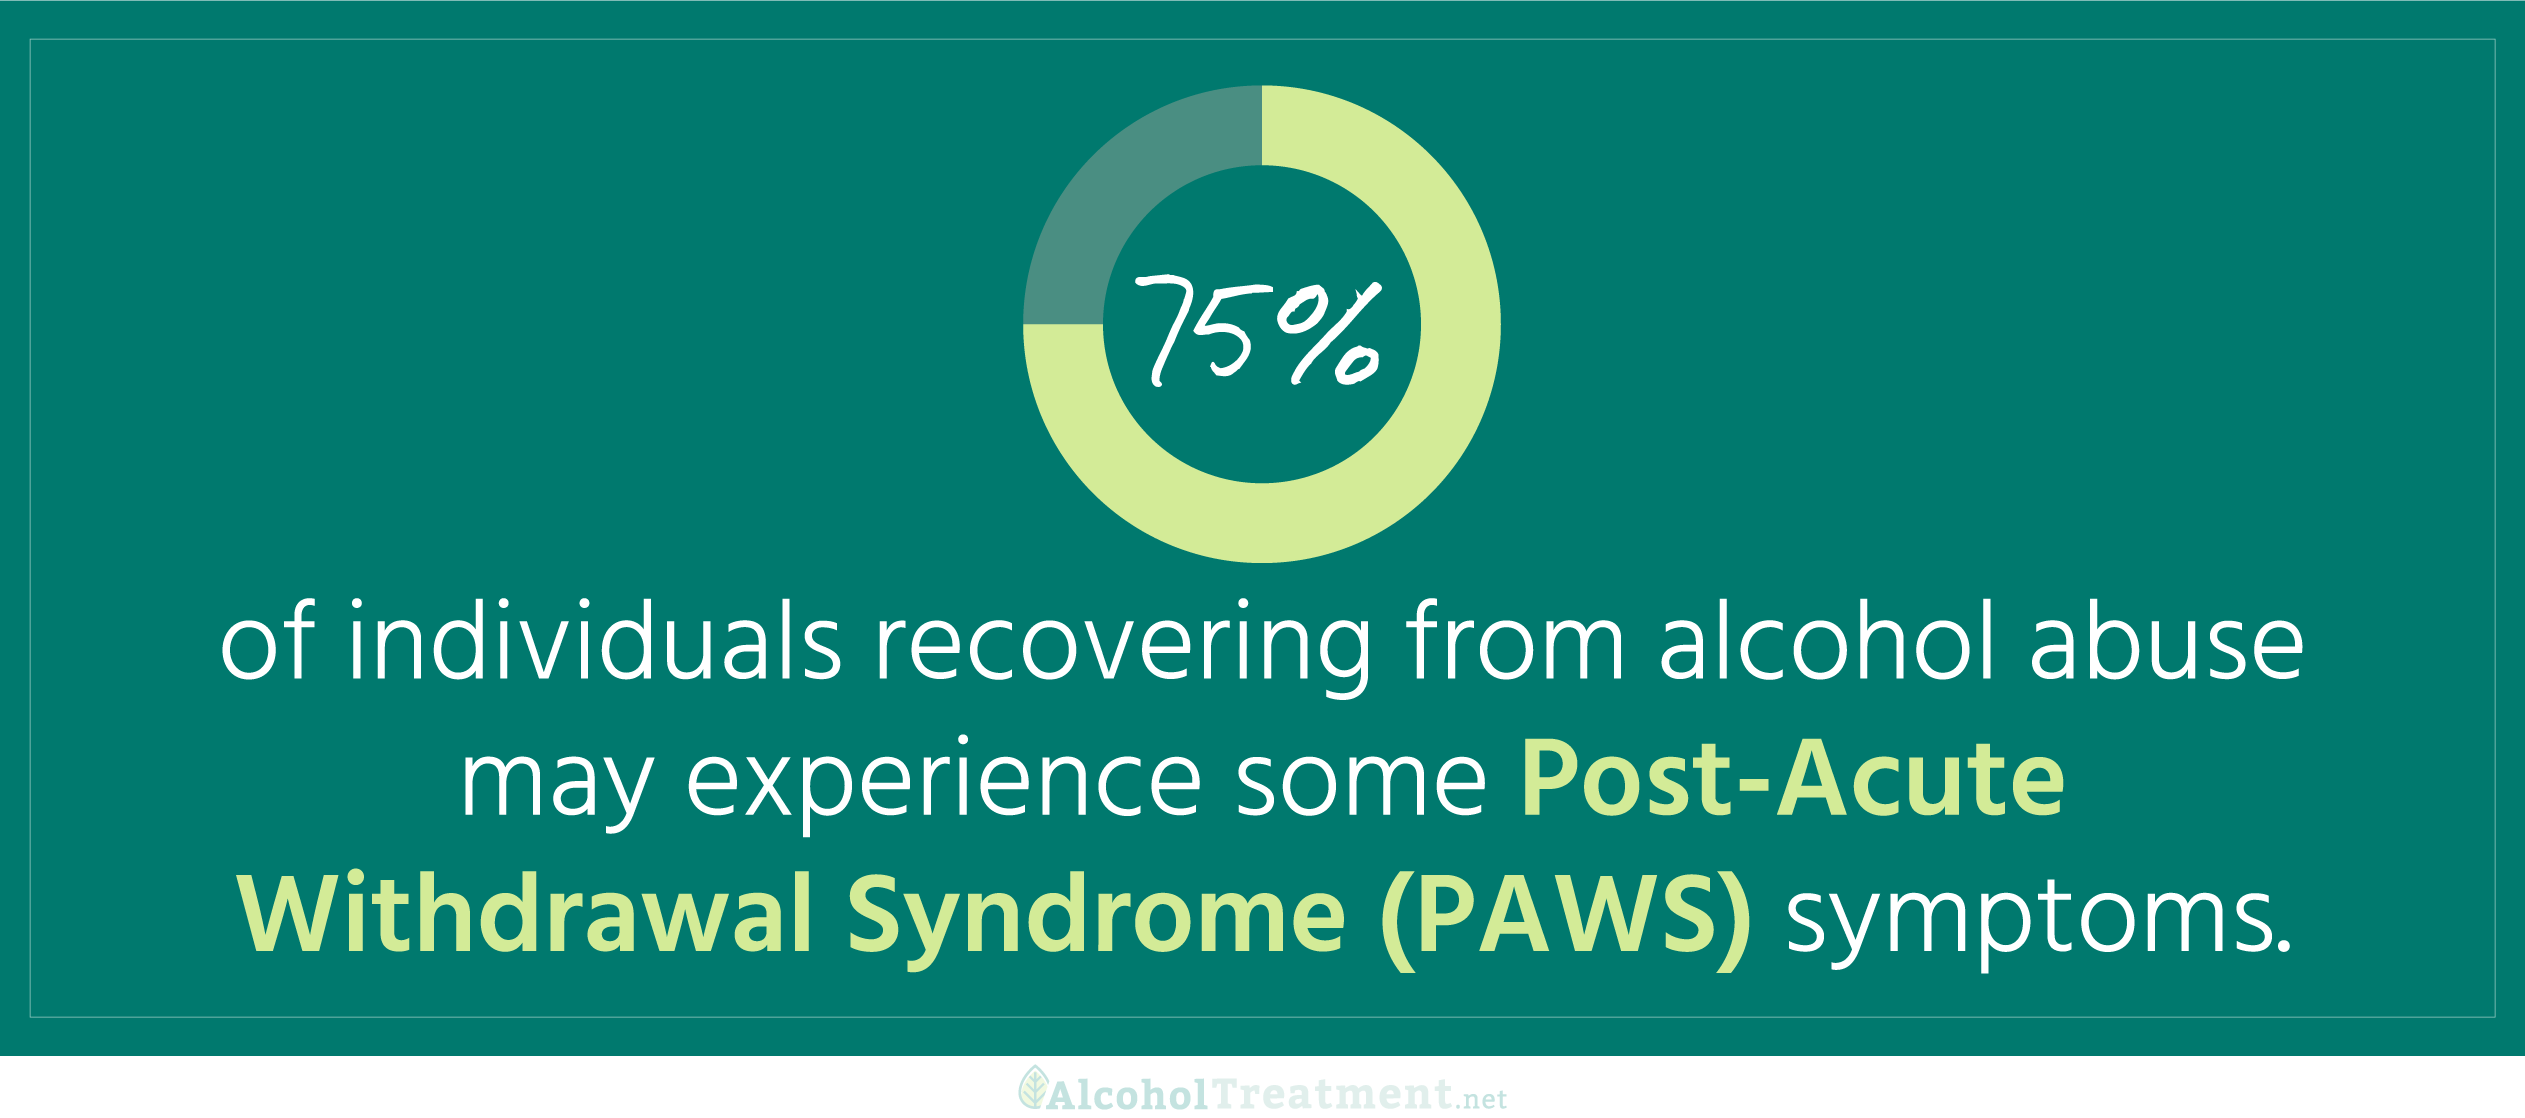 Post-Acute Withdrawal Syndrome_PAWS